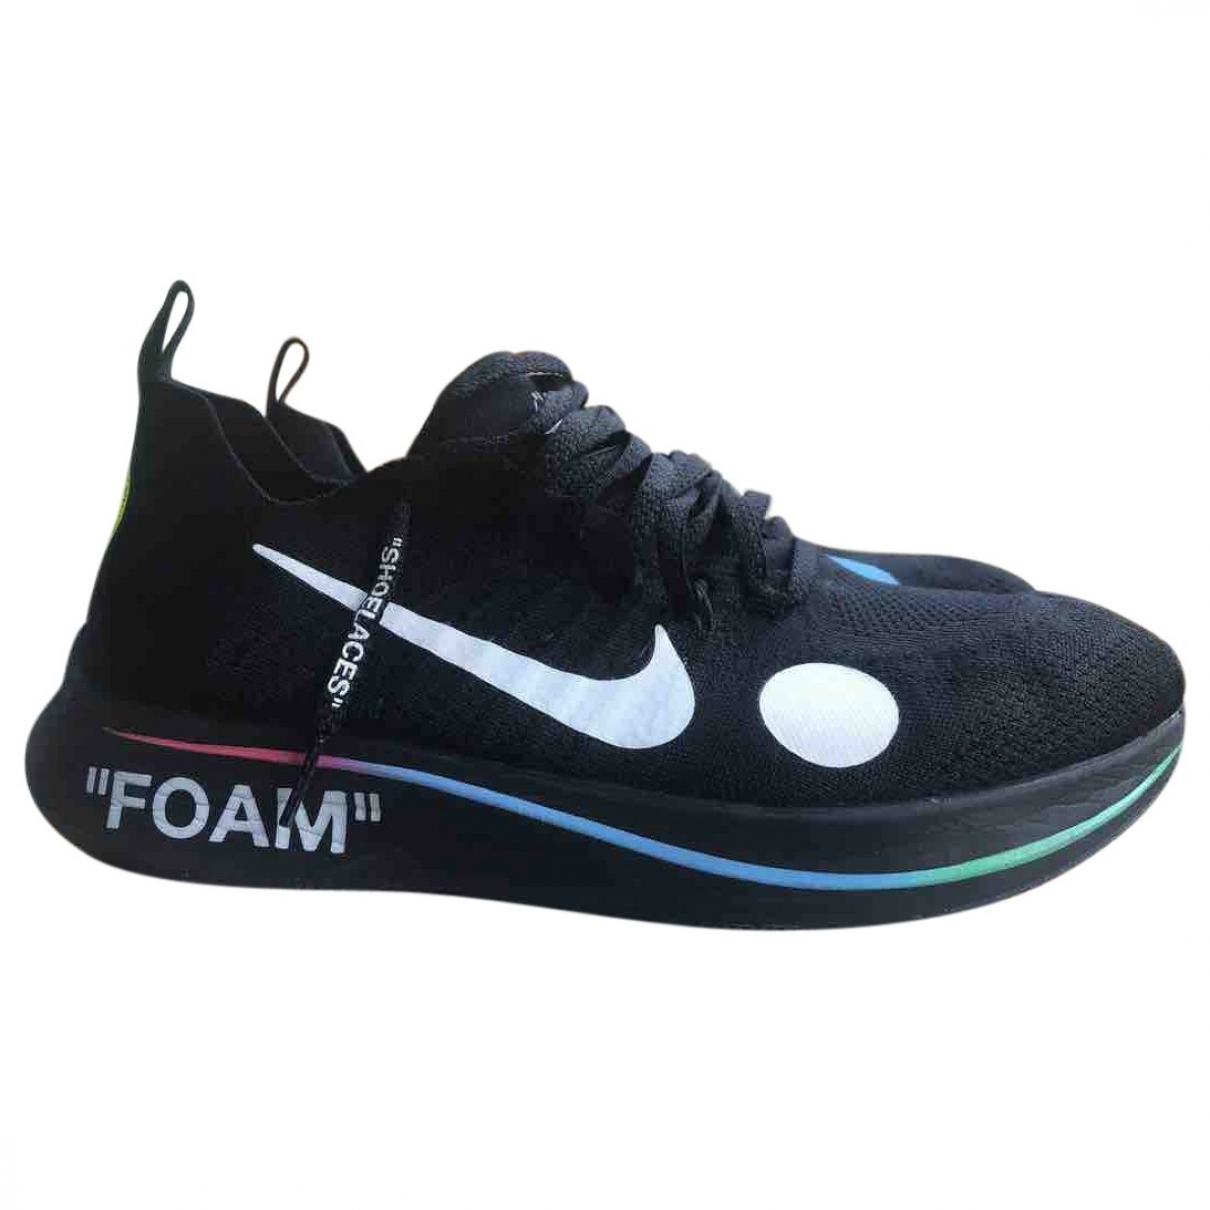 Nike X Off-white Zoom Fly Mercurial Black Cloth Trainers for Men 44 EU